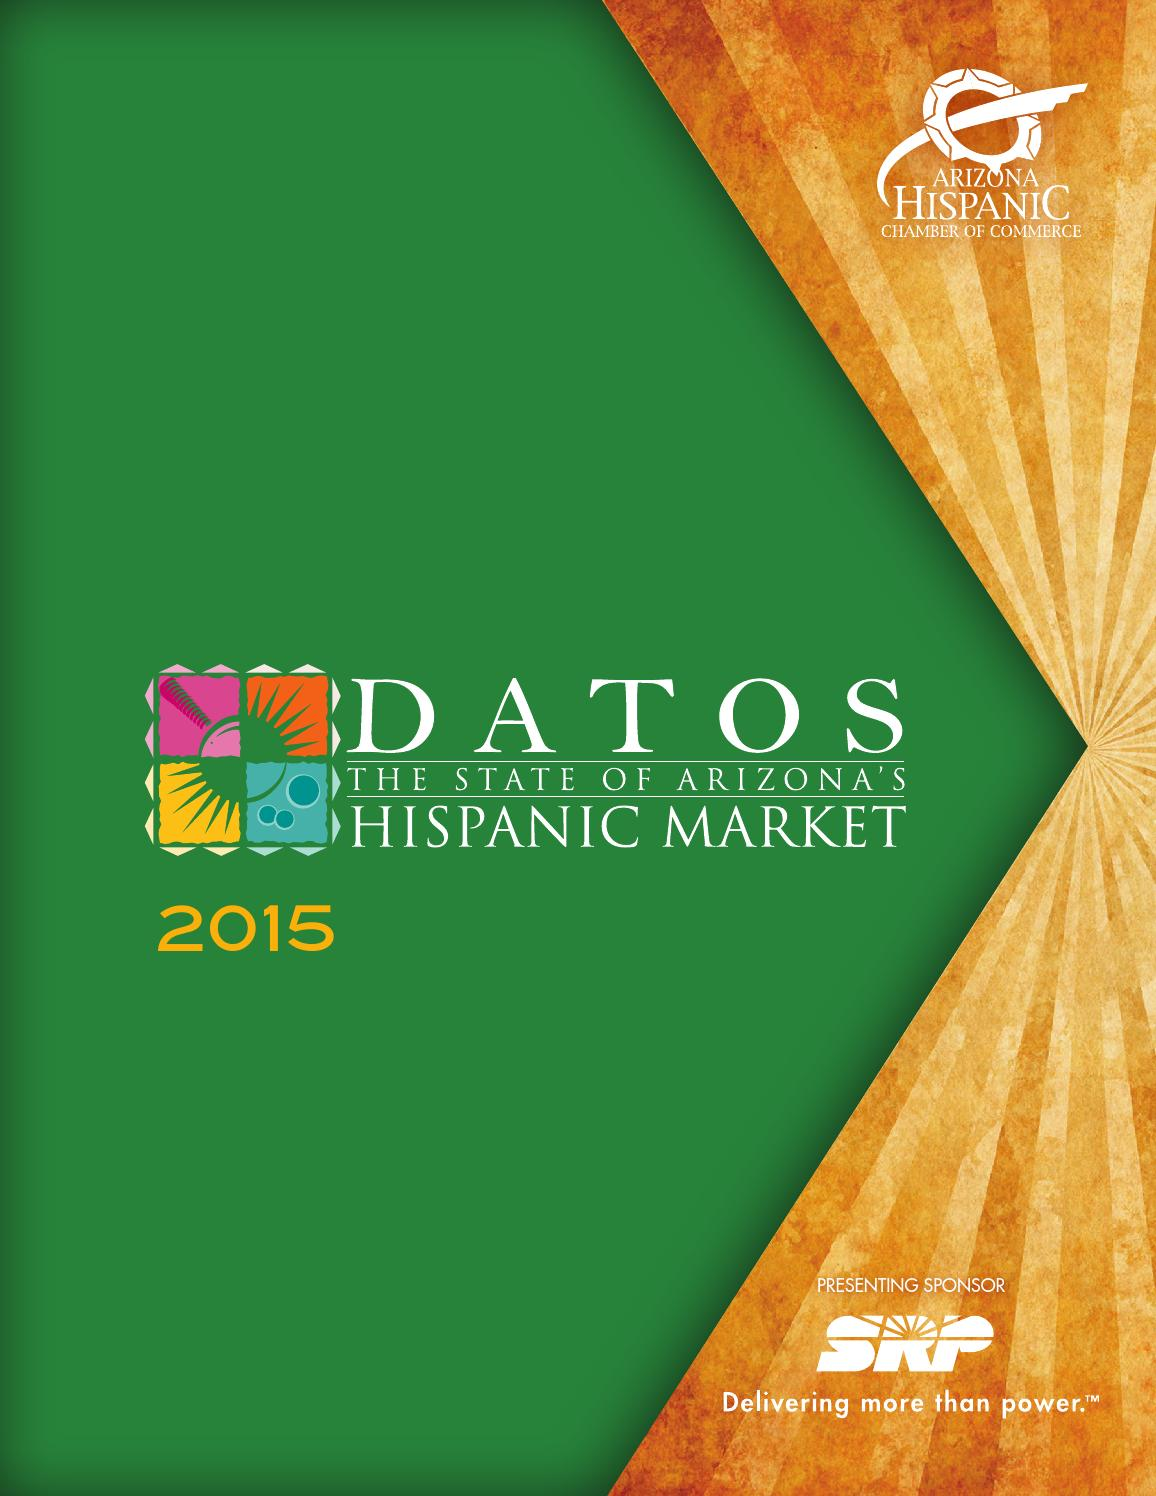 Datos az15 book by arizona hispanic chamber of commerce issuu fandeluxe Image collections